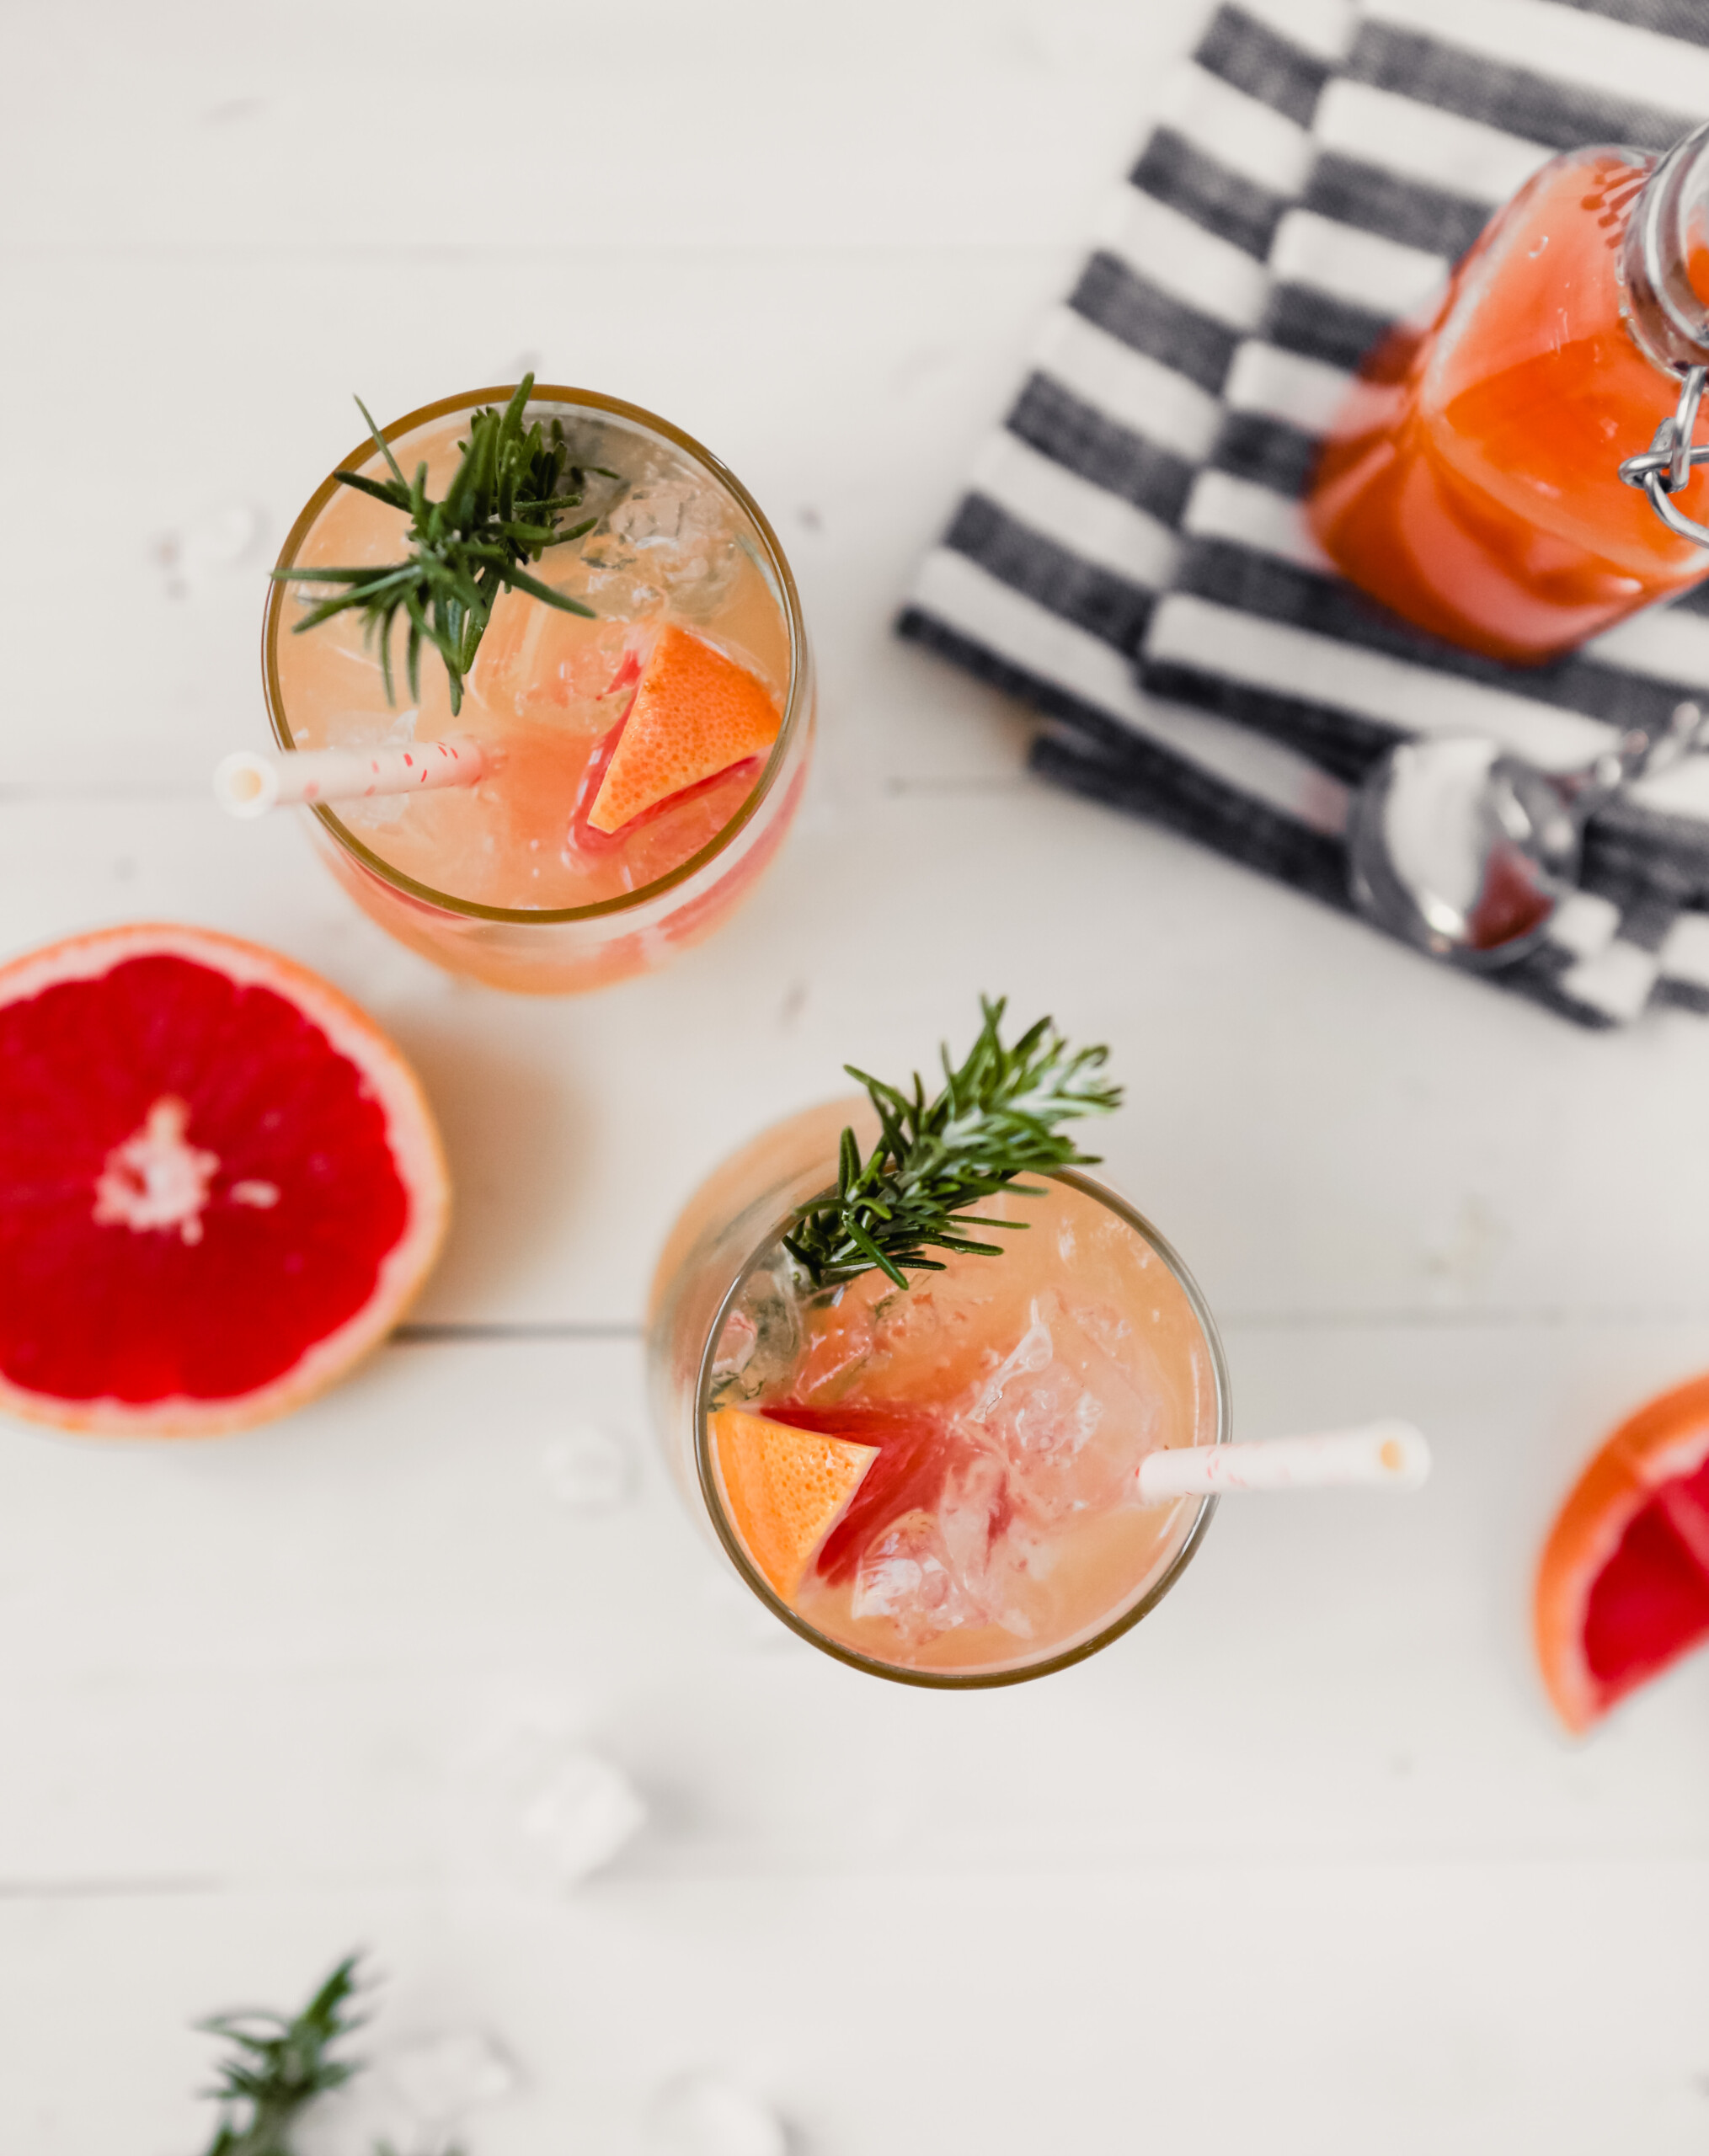 Photograph of a homemade grapefruit soda with a grapefruit slice, sprig of rosemary and white straw